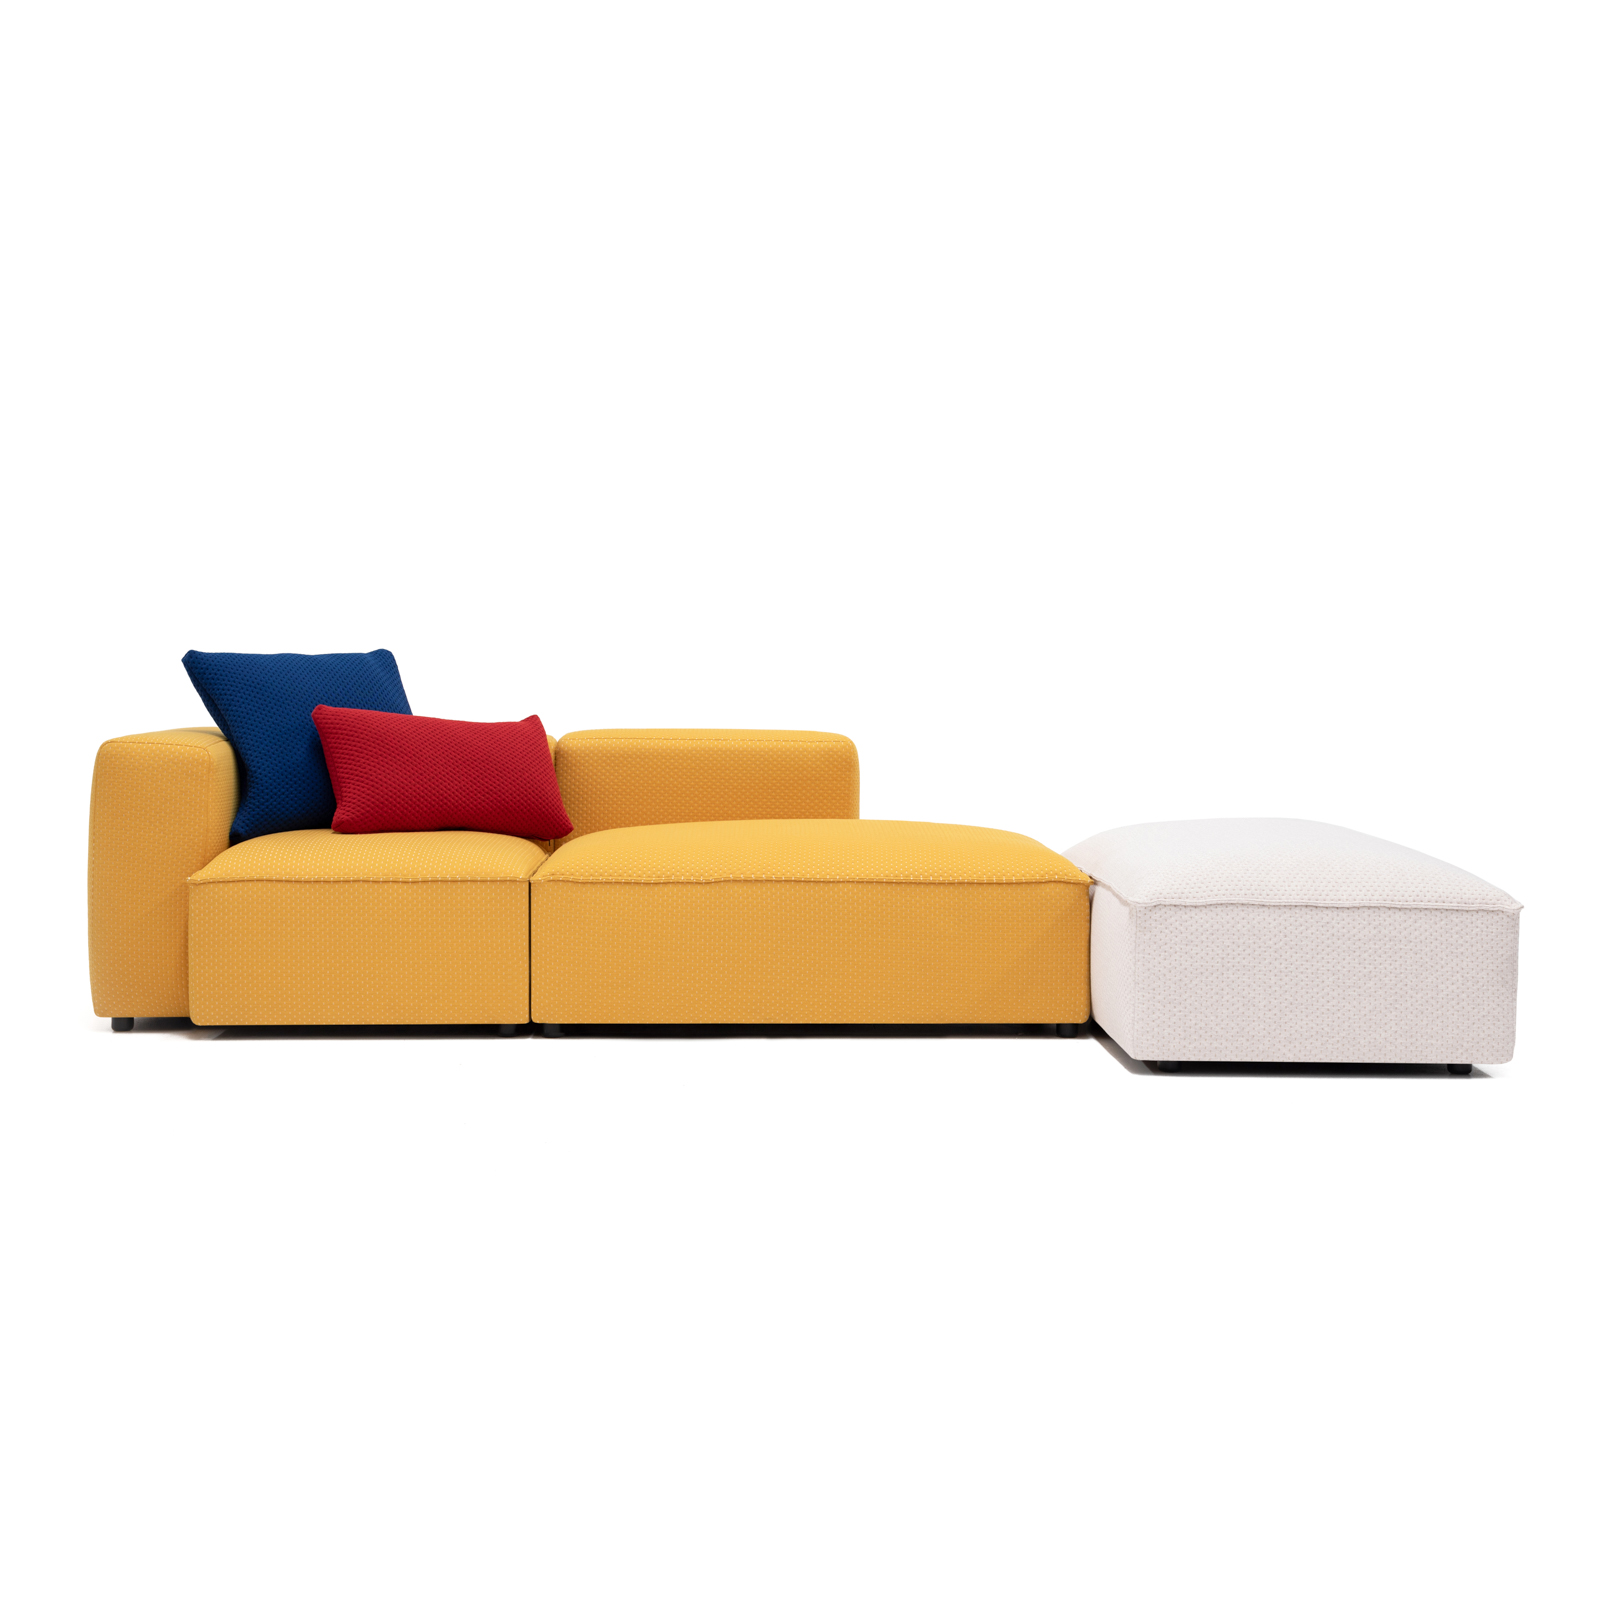 Permanent Future Easey Sofa Chasie Left Zoom Yellow Navy Red Cushion Cream Ottoman Pf Sf Ea Ch L Zy Front View